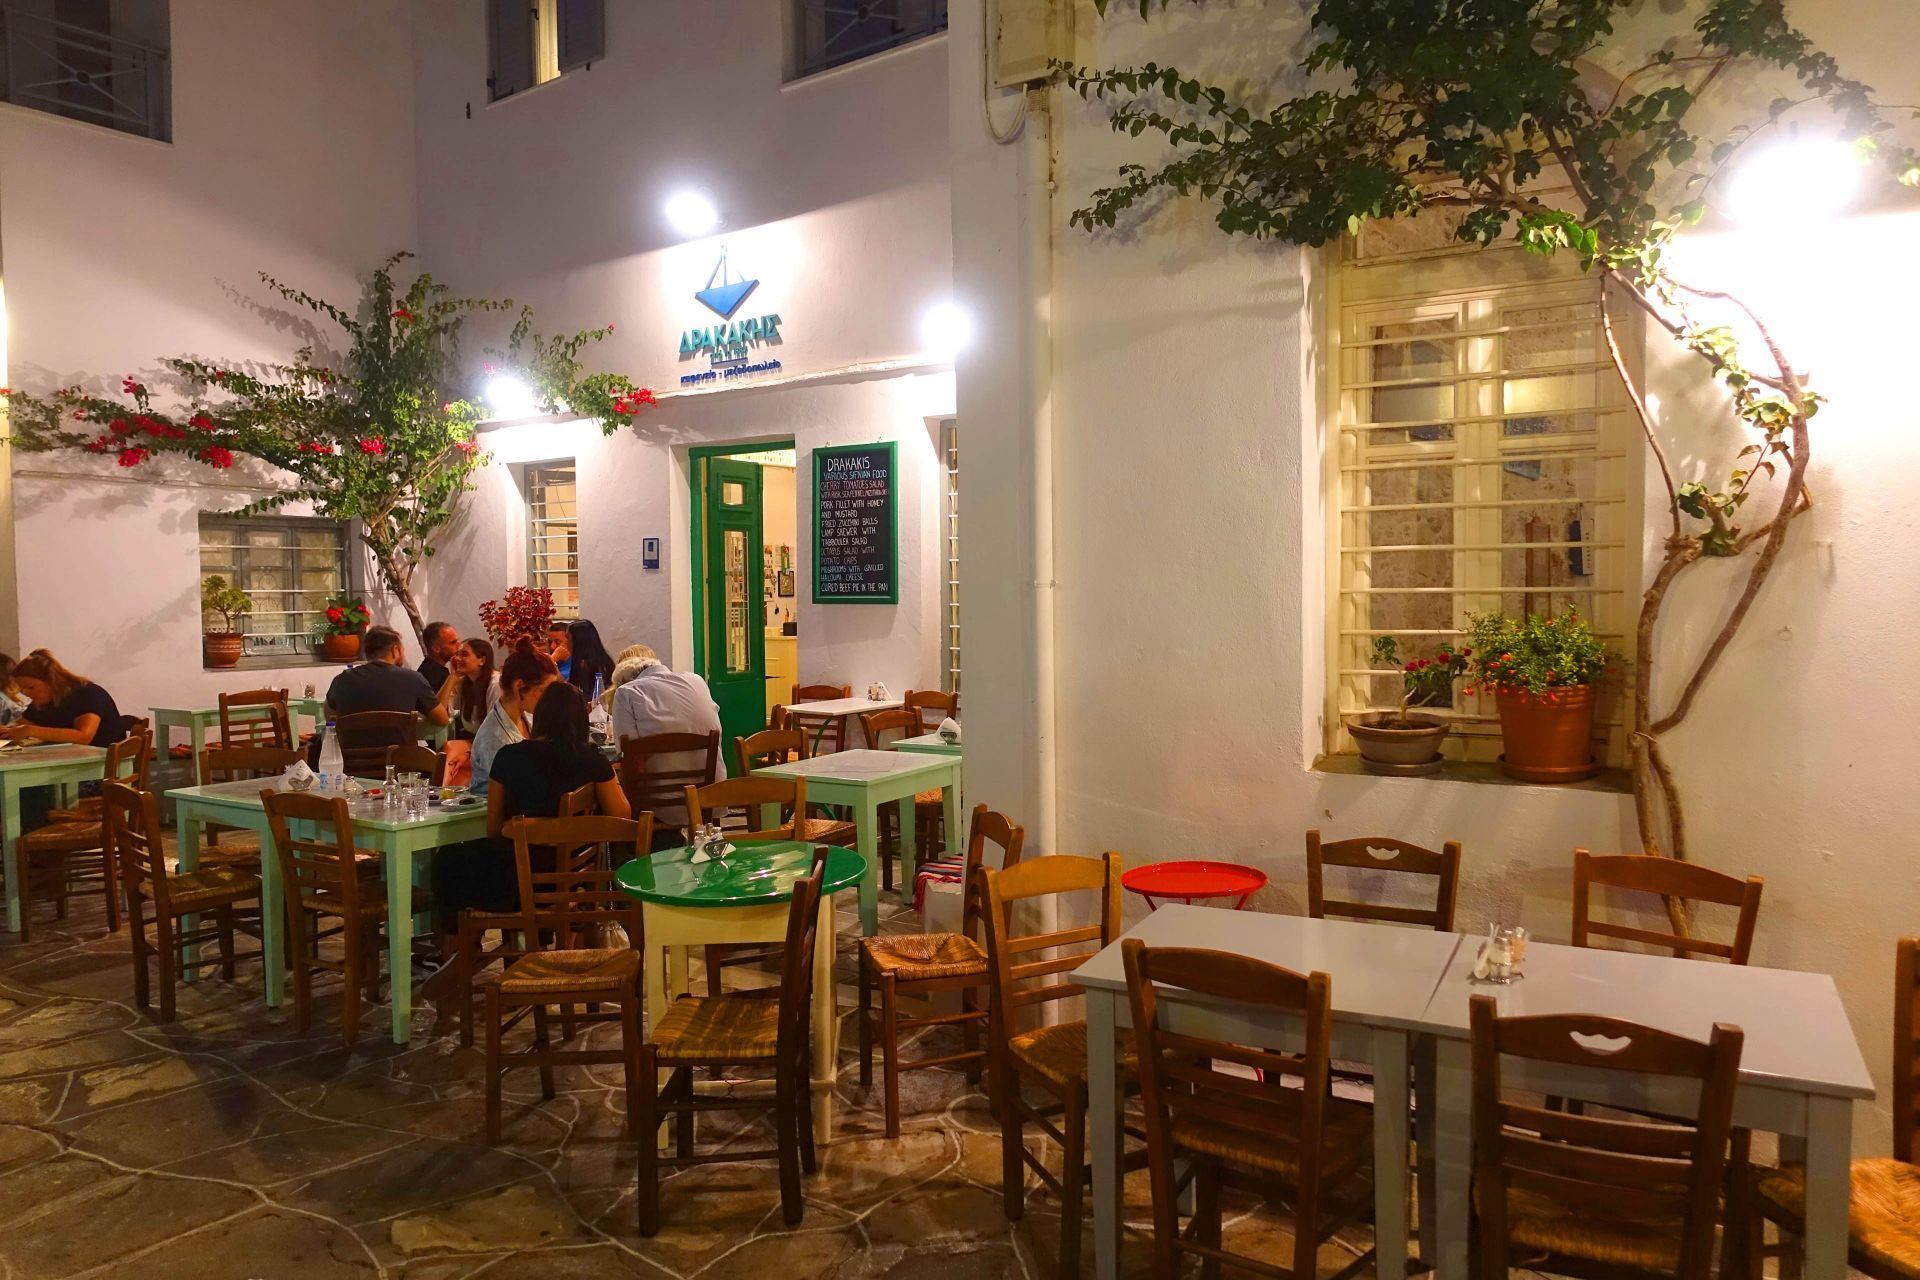 Places to eat and drink in Sifnos